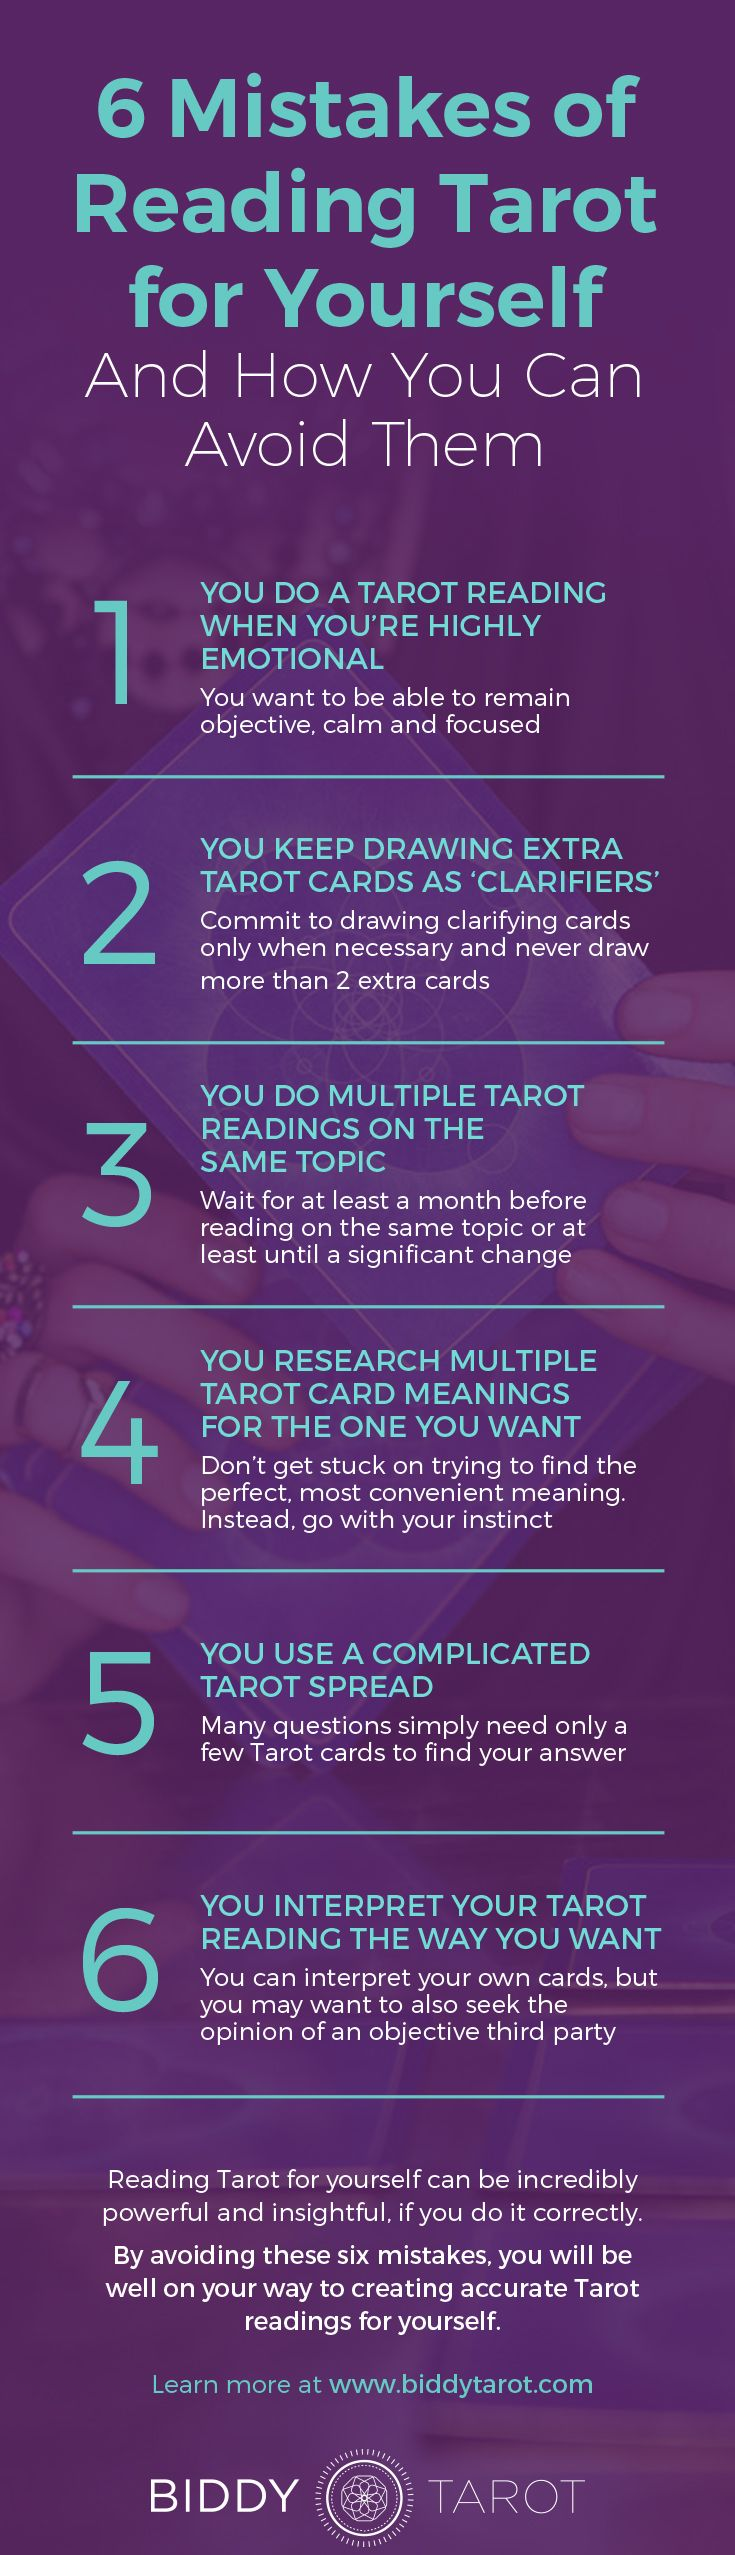 Learn the top 6 mistakes of reading #tarot for yourself.